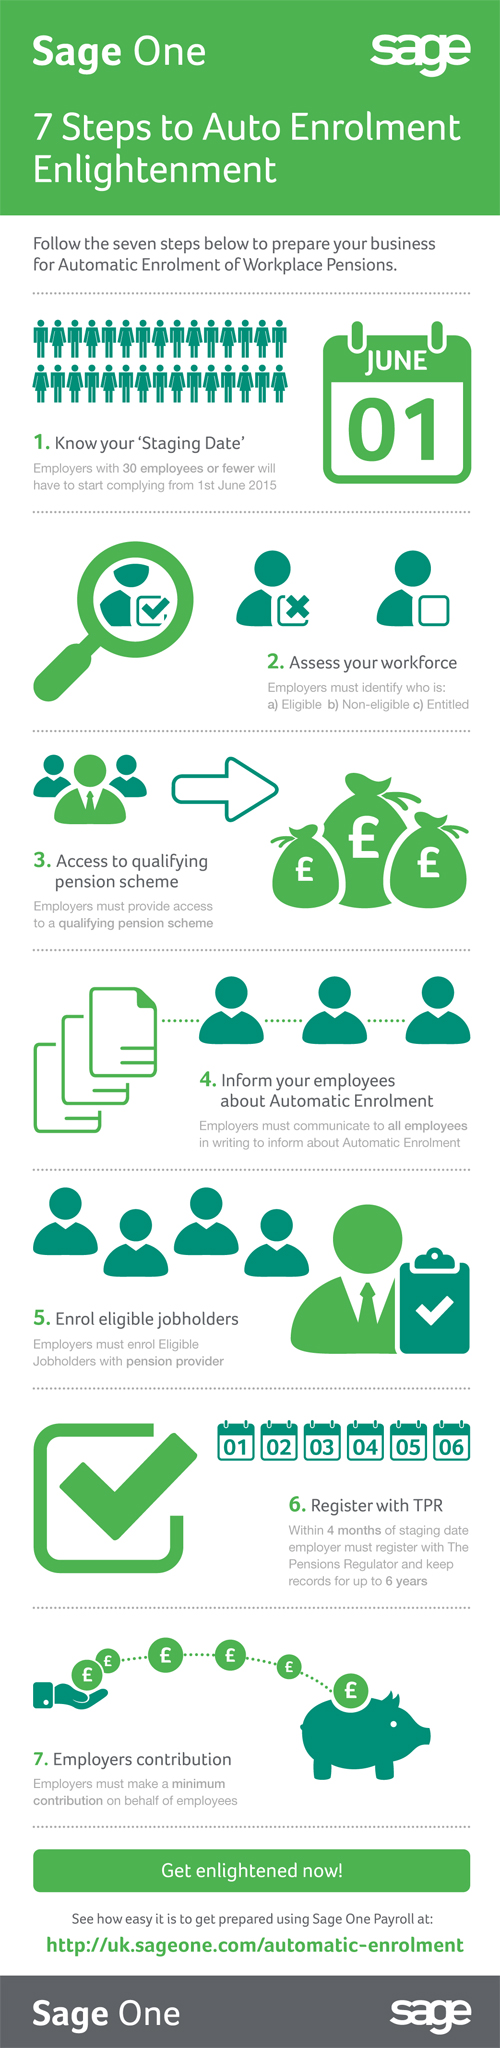 [Infographic] 7 Steps to Auto Enrolment Enlightenment